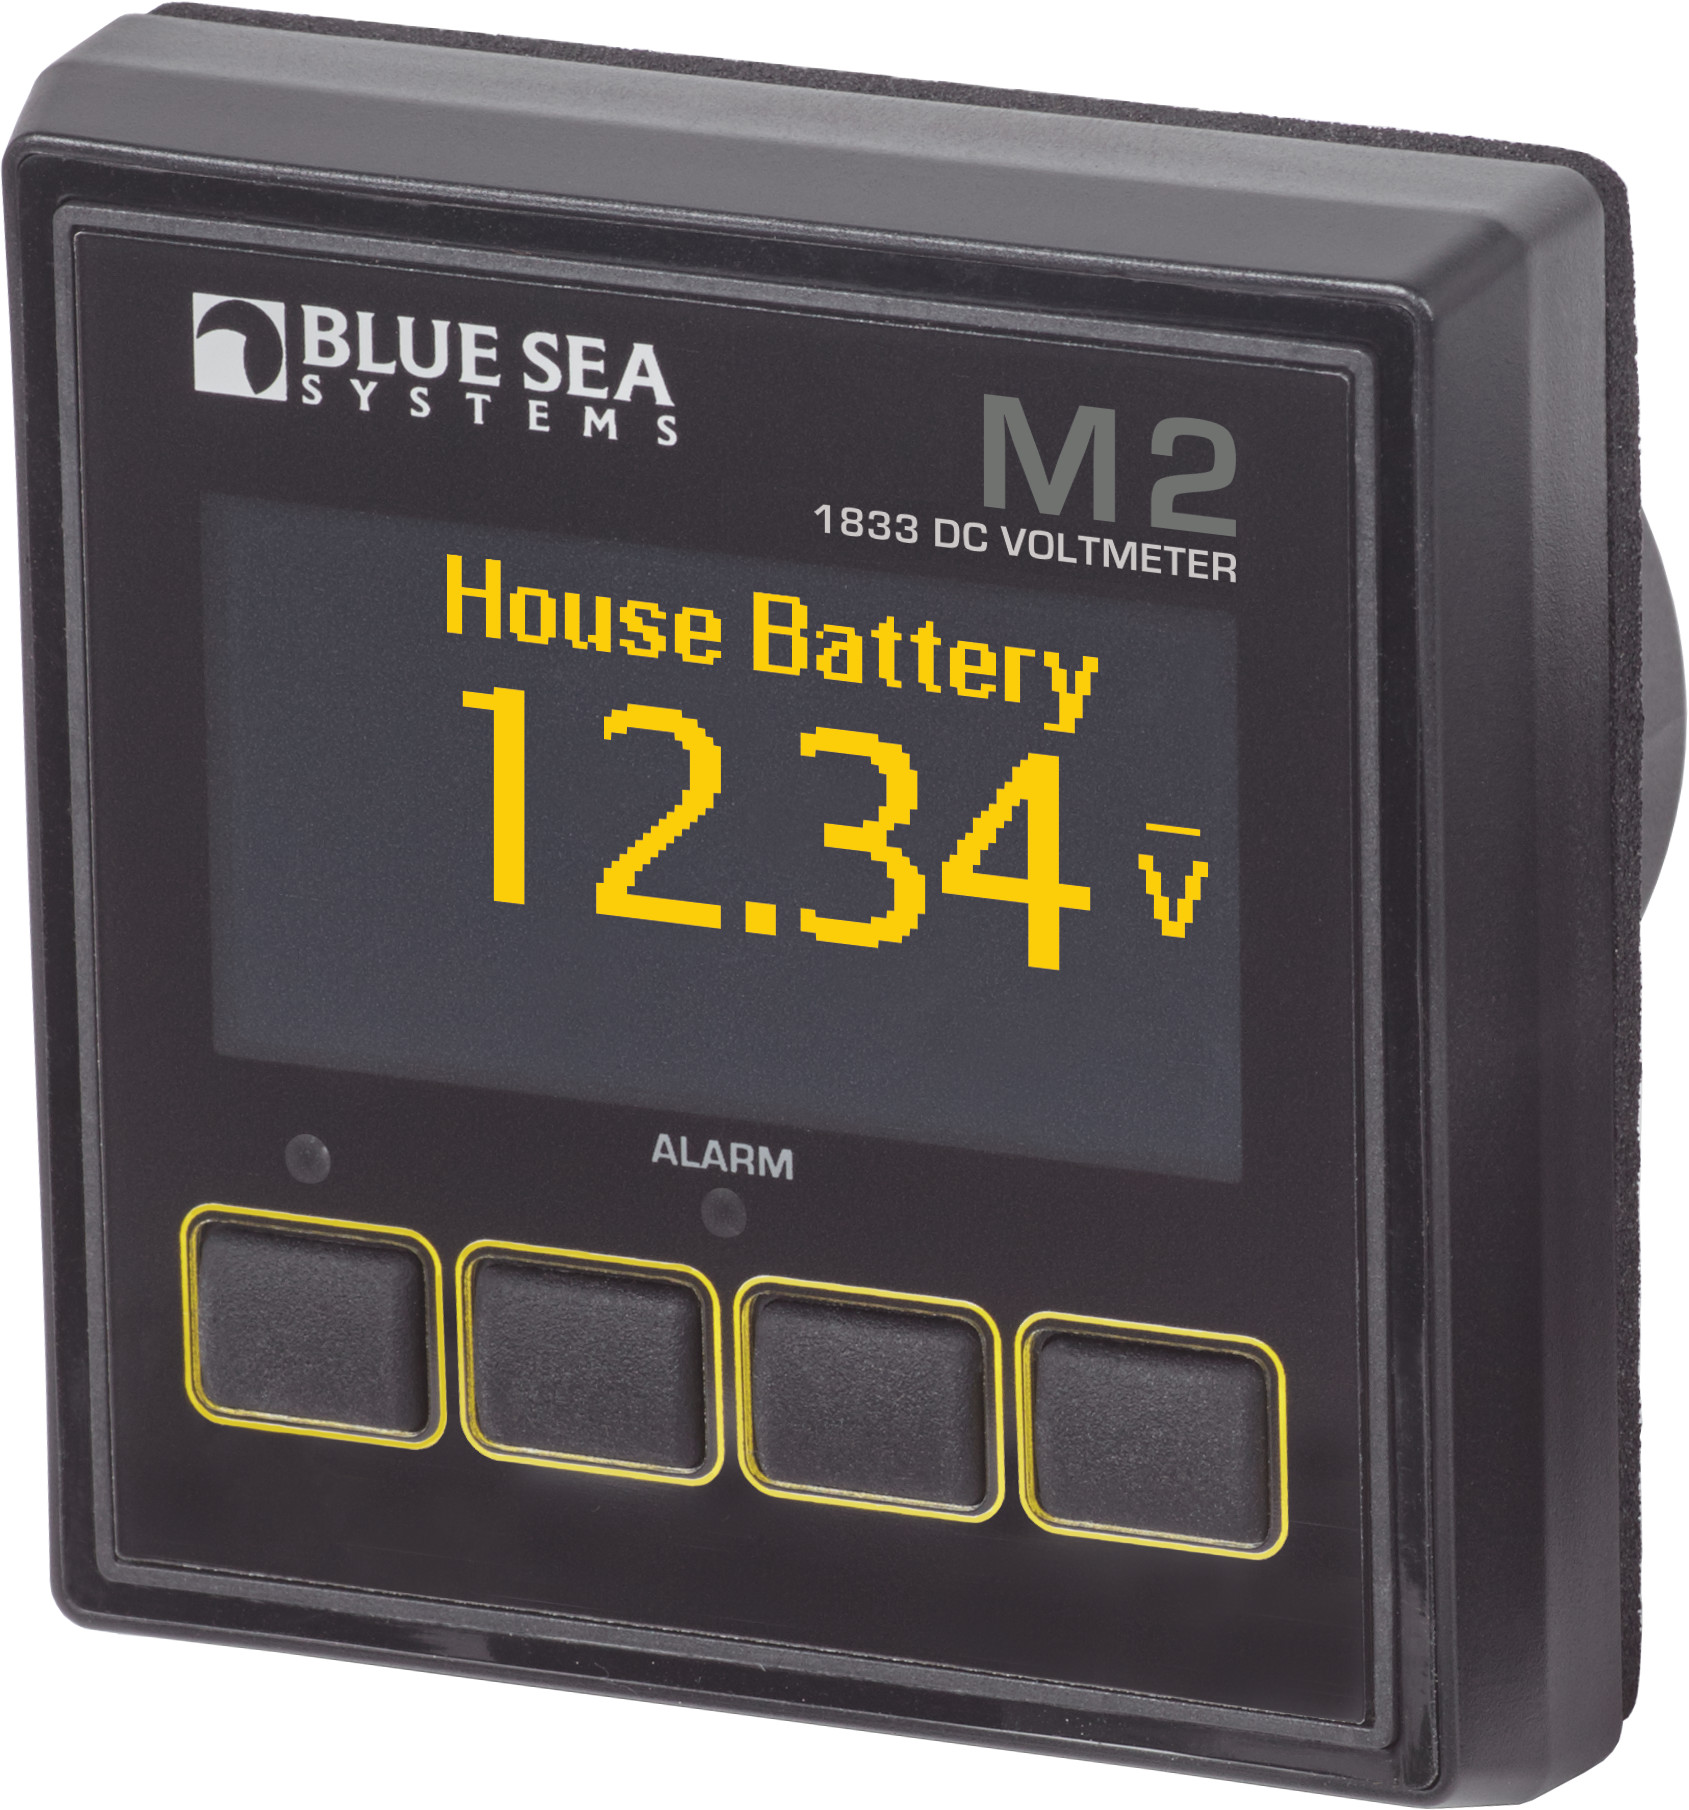 M2 Dc Voltmeter Blue Sea Systems